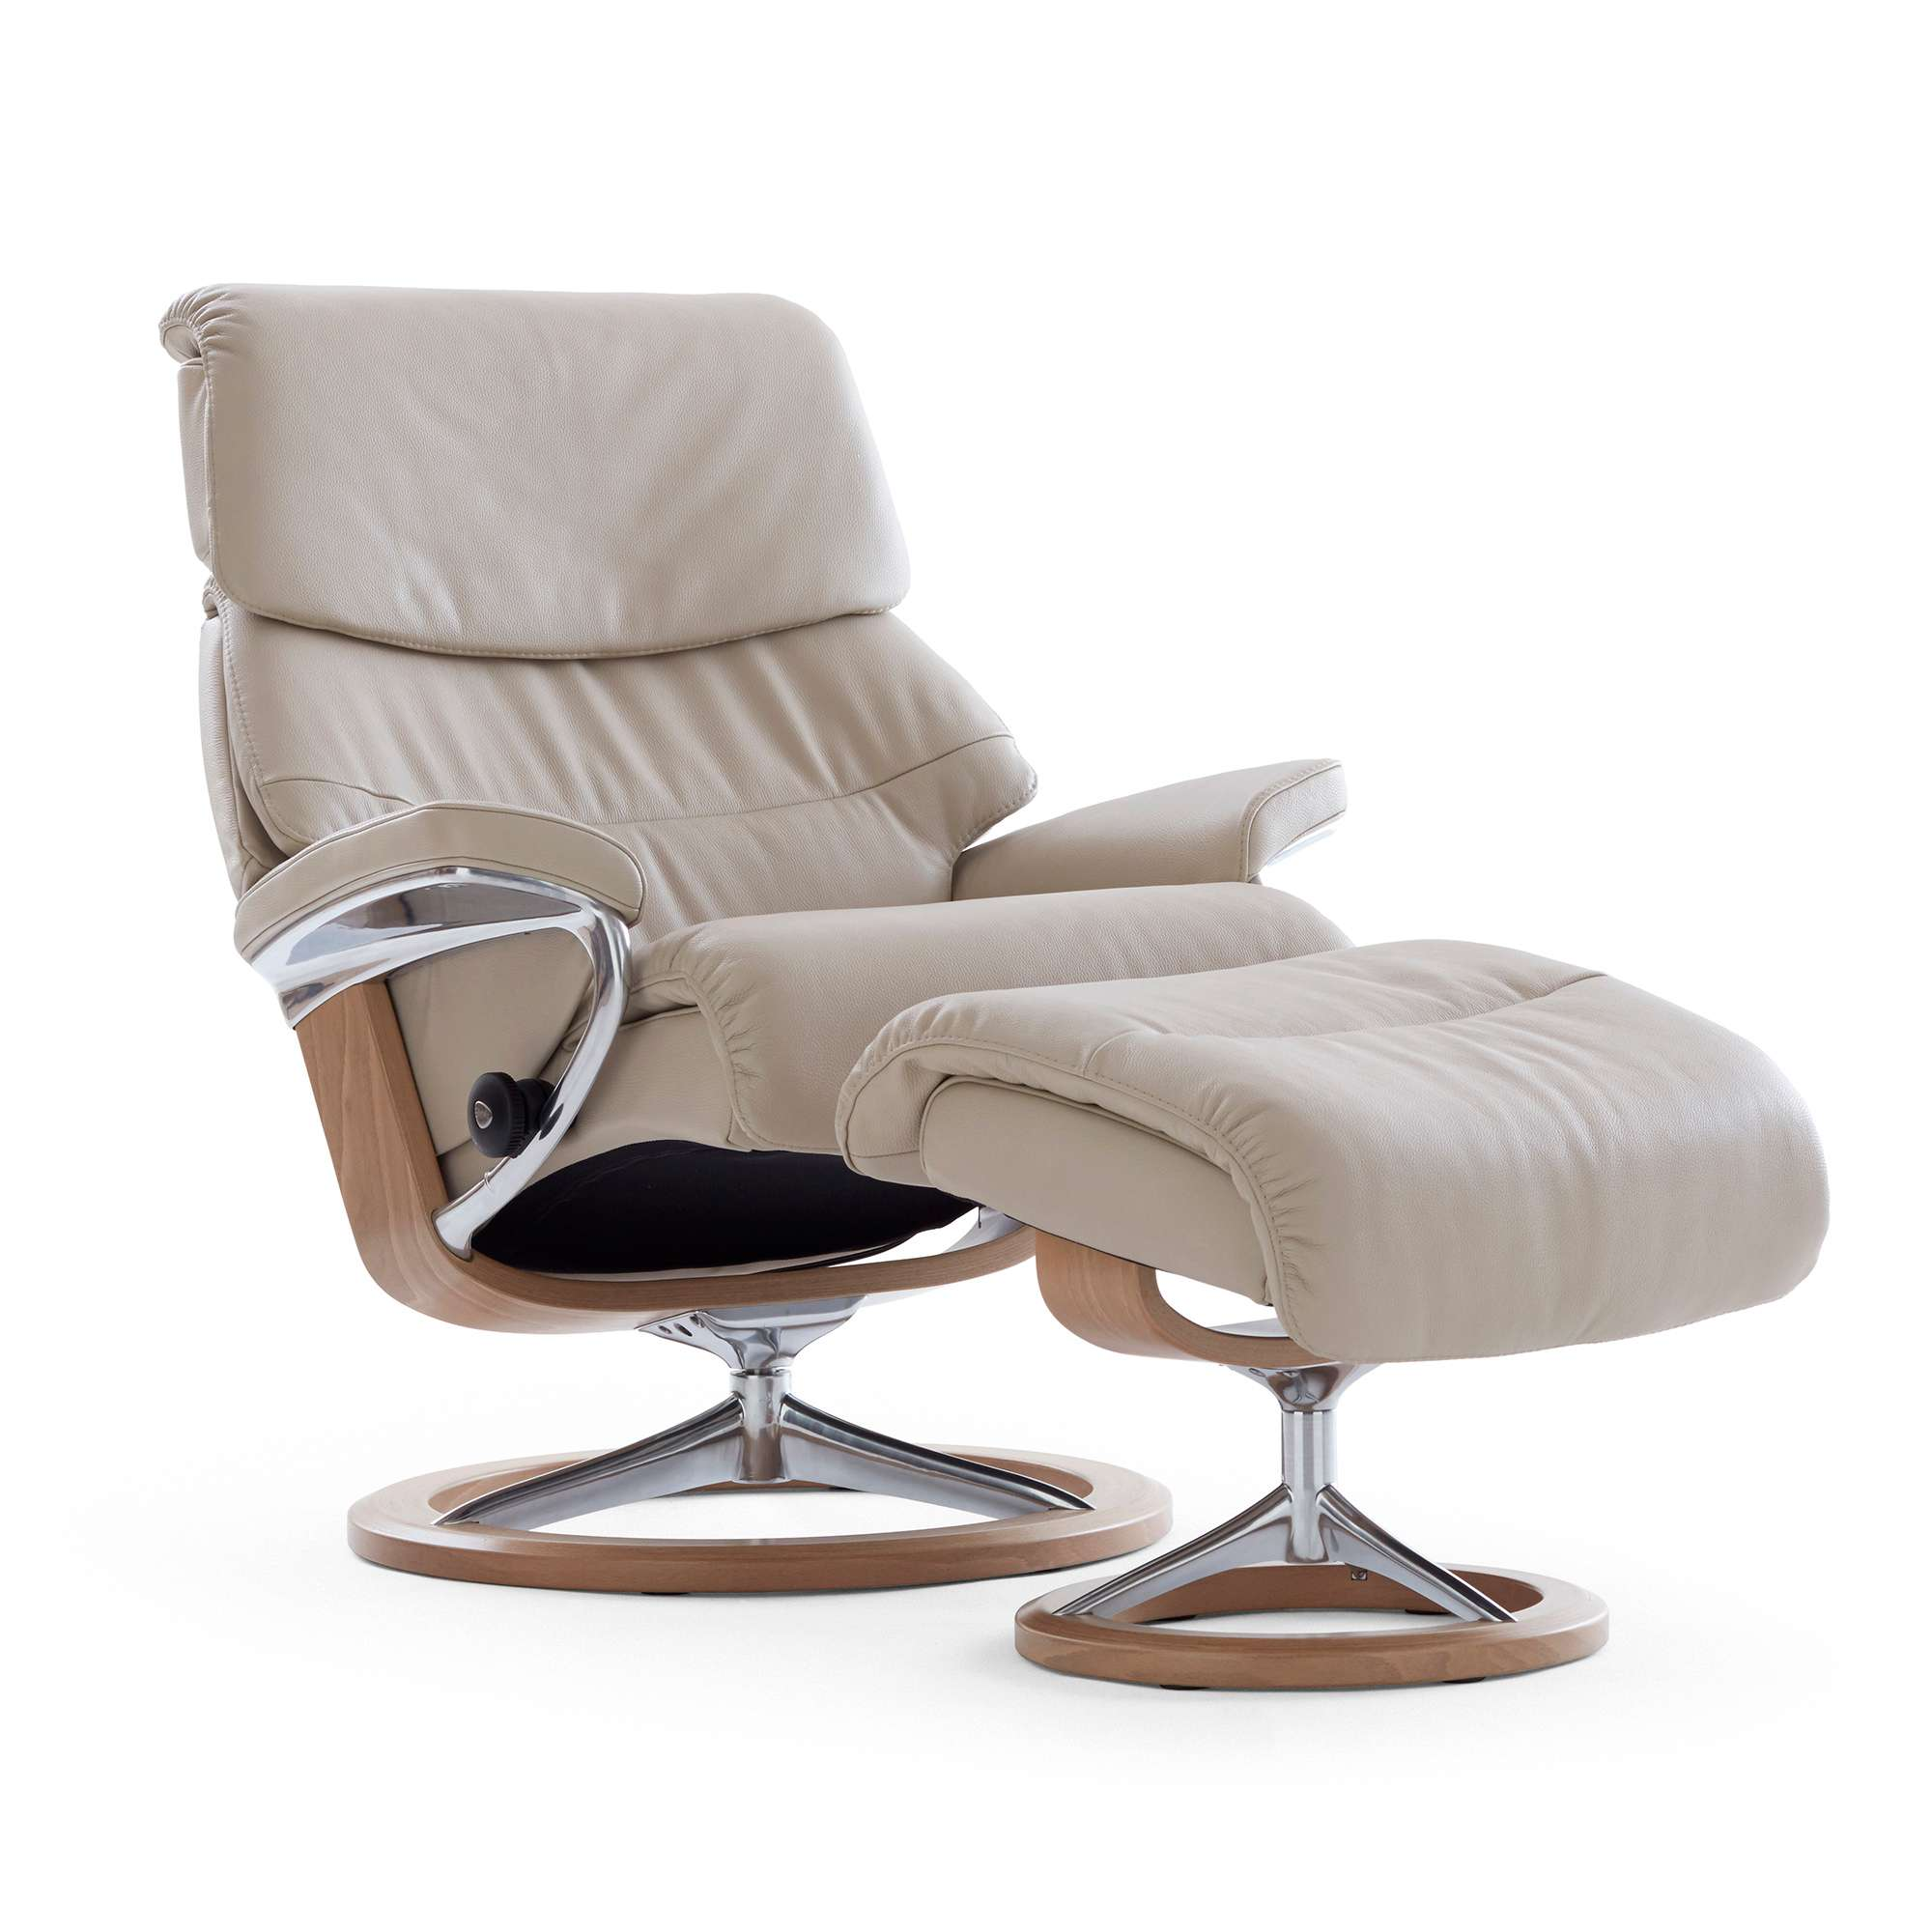 Stressless Nordic Legcomfort Capri Scandinavian Design Furniture